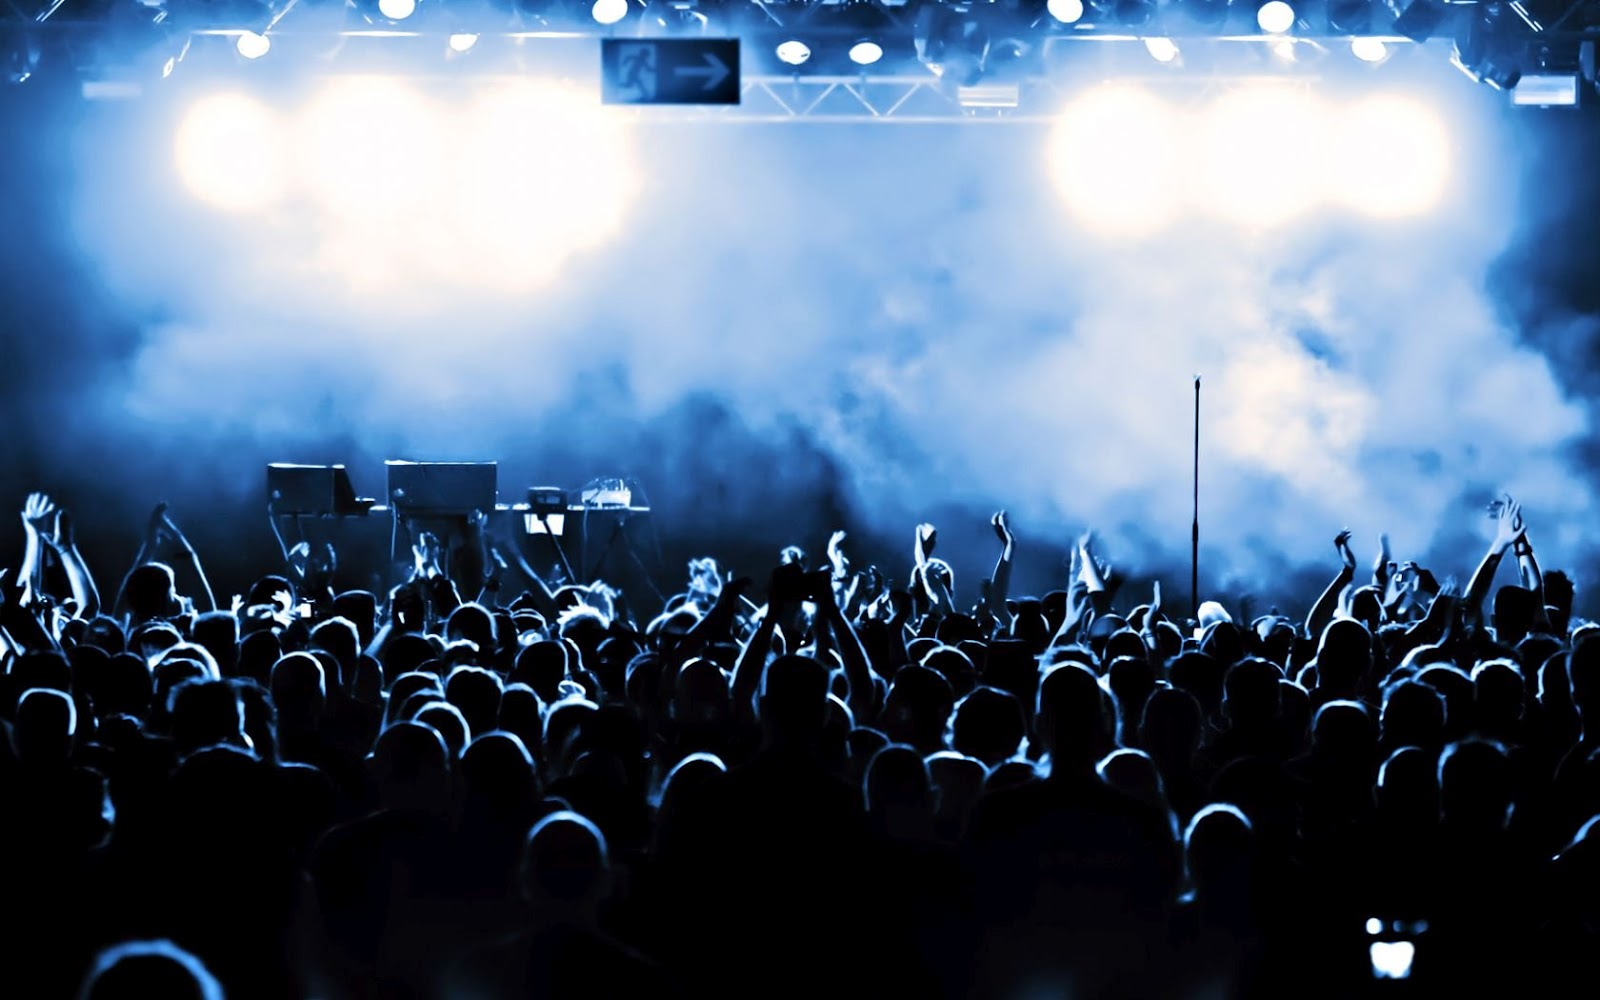 Music Concert Noise HD Wallpaper   Cool HD Wallpapers 1600x1000